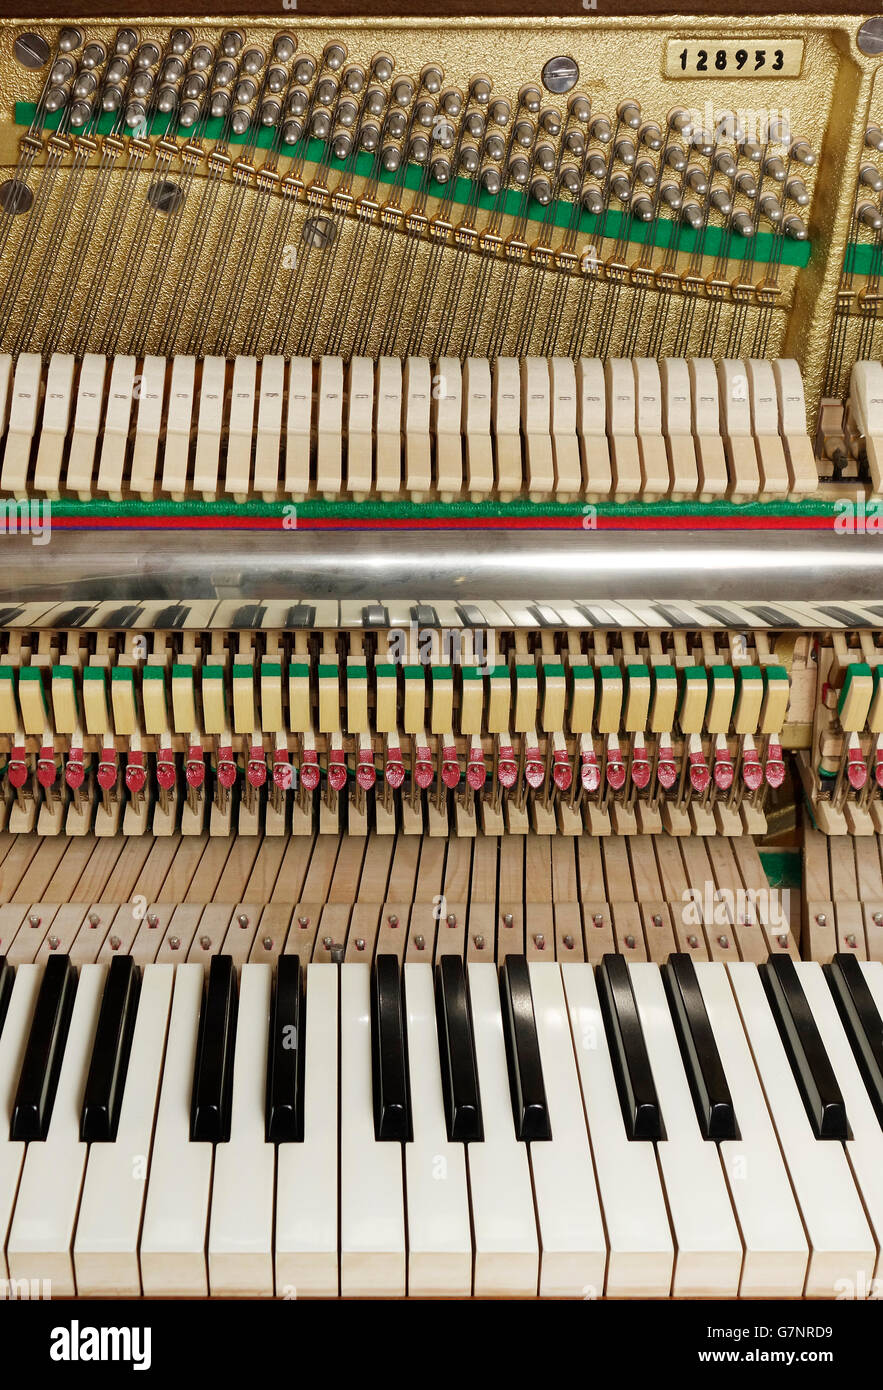 Close up. Upright piano keyboard and action mechanism with strings. - Stock Image